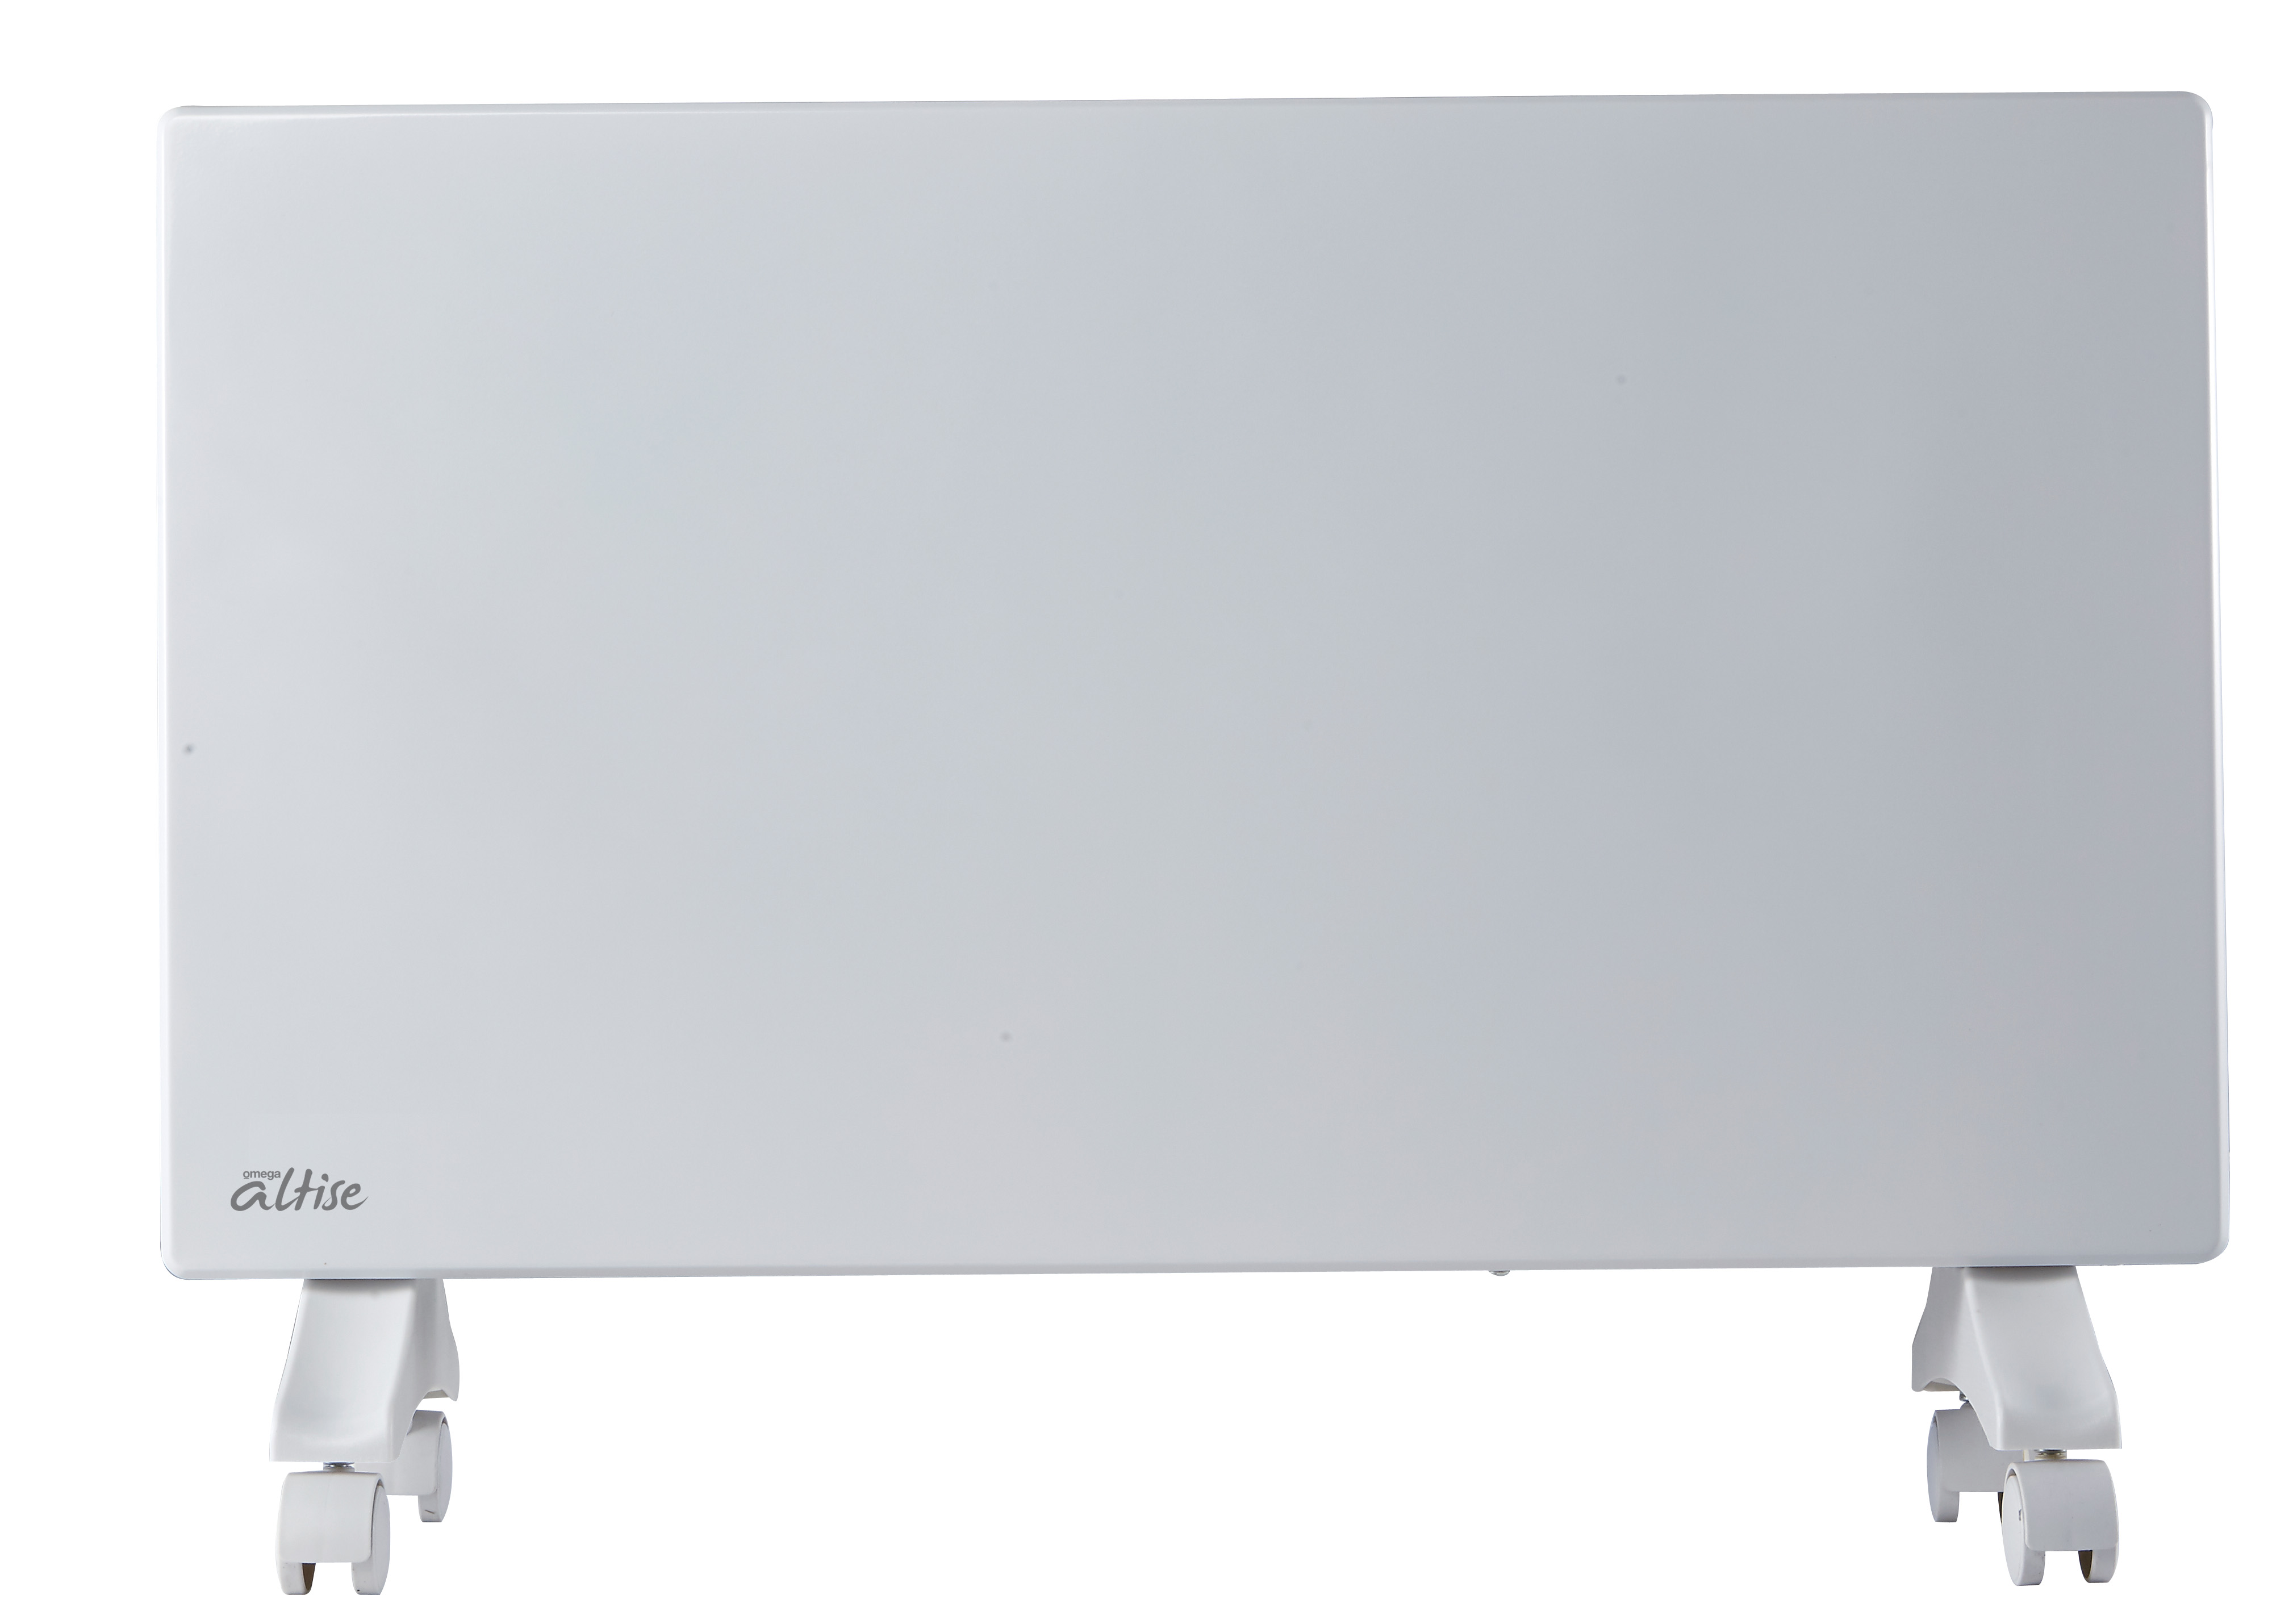 Omega Altise Product Panel Convection Heater with LED Display - White2000W(OAPE2000W)